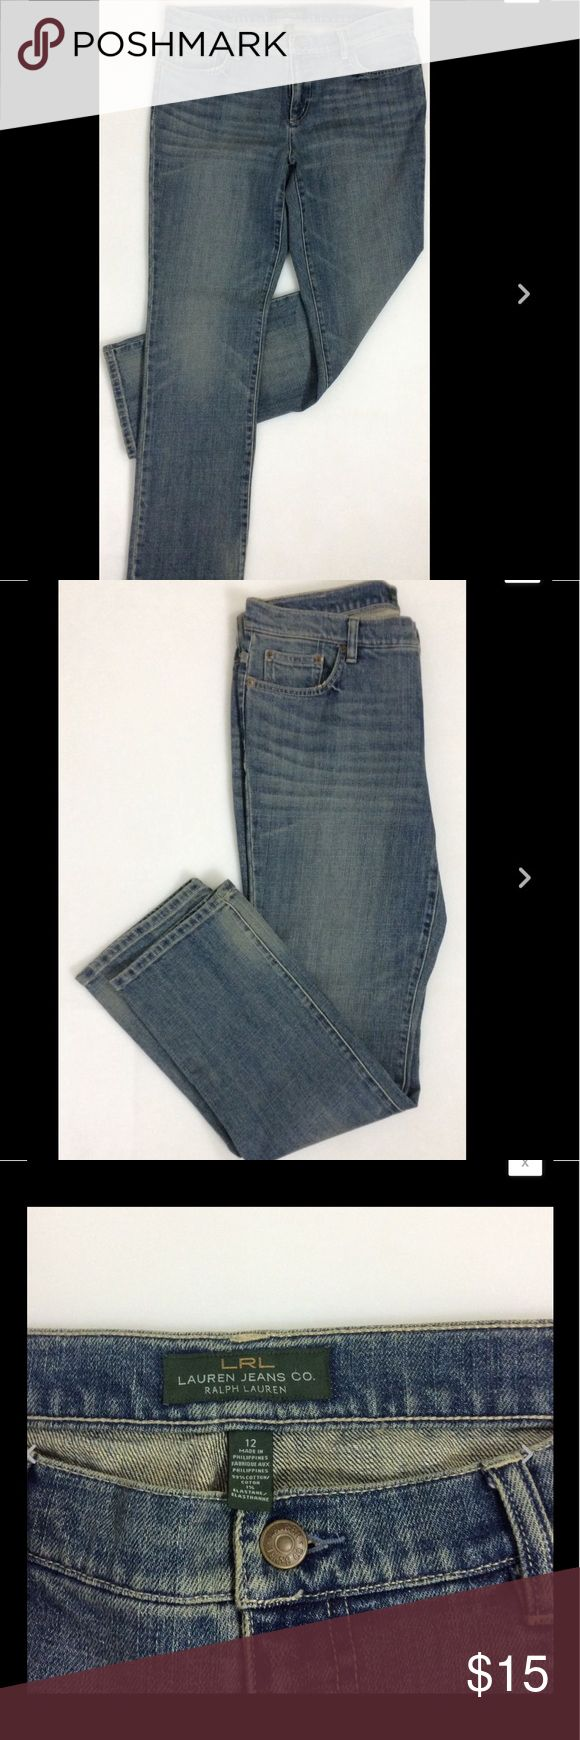 """Womens LRL LAUREN JEANS CO. Straight Cut Jeans(12) Womens LRL LAUREN JEANS CO. Straight Cut Jeans #1356111 / Stretch Cotton Size 12  Waist 32""""  Inseam 31""""  Front Rise 9.5""""   Thanks for looking!   B909 Jeans Straight Leg"""